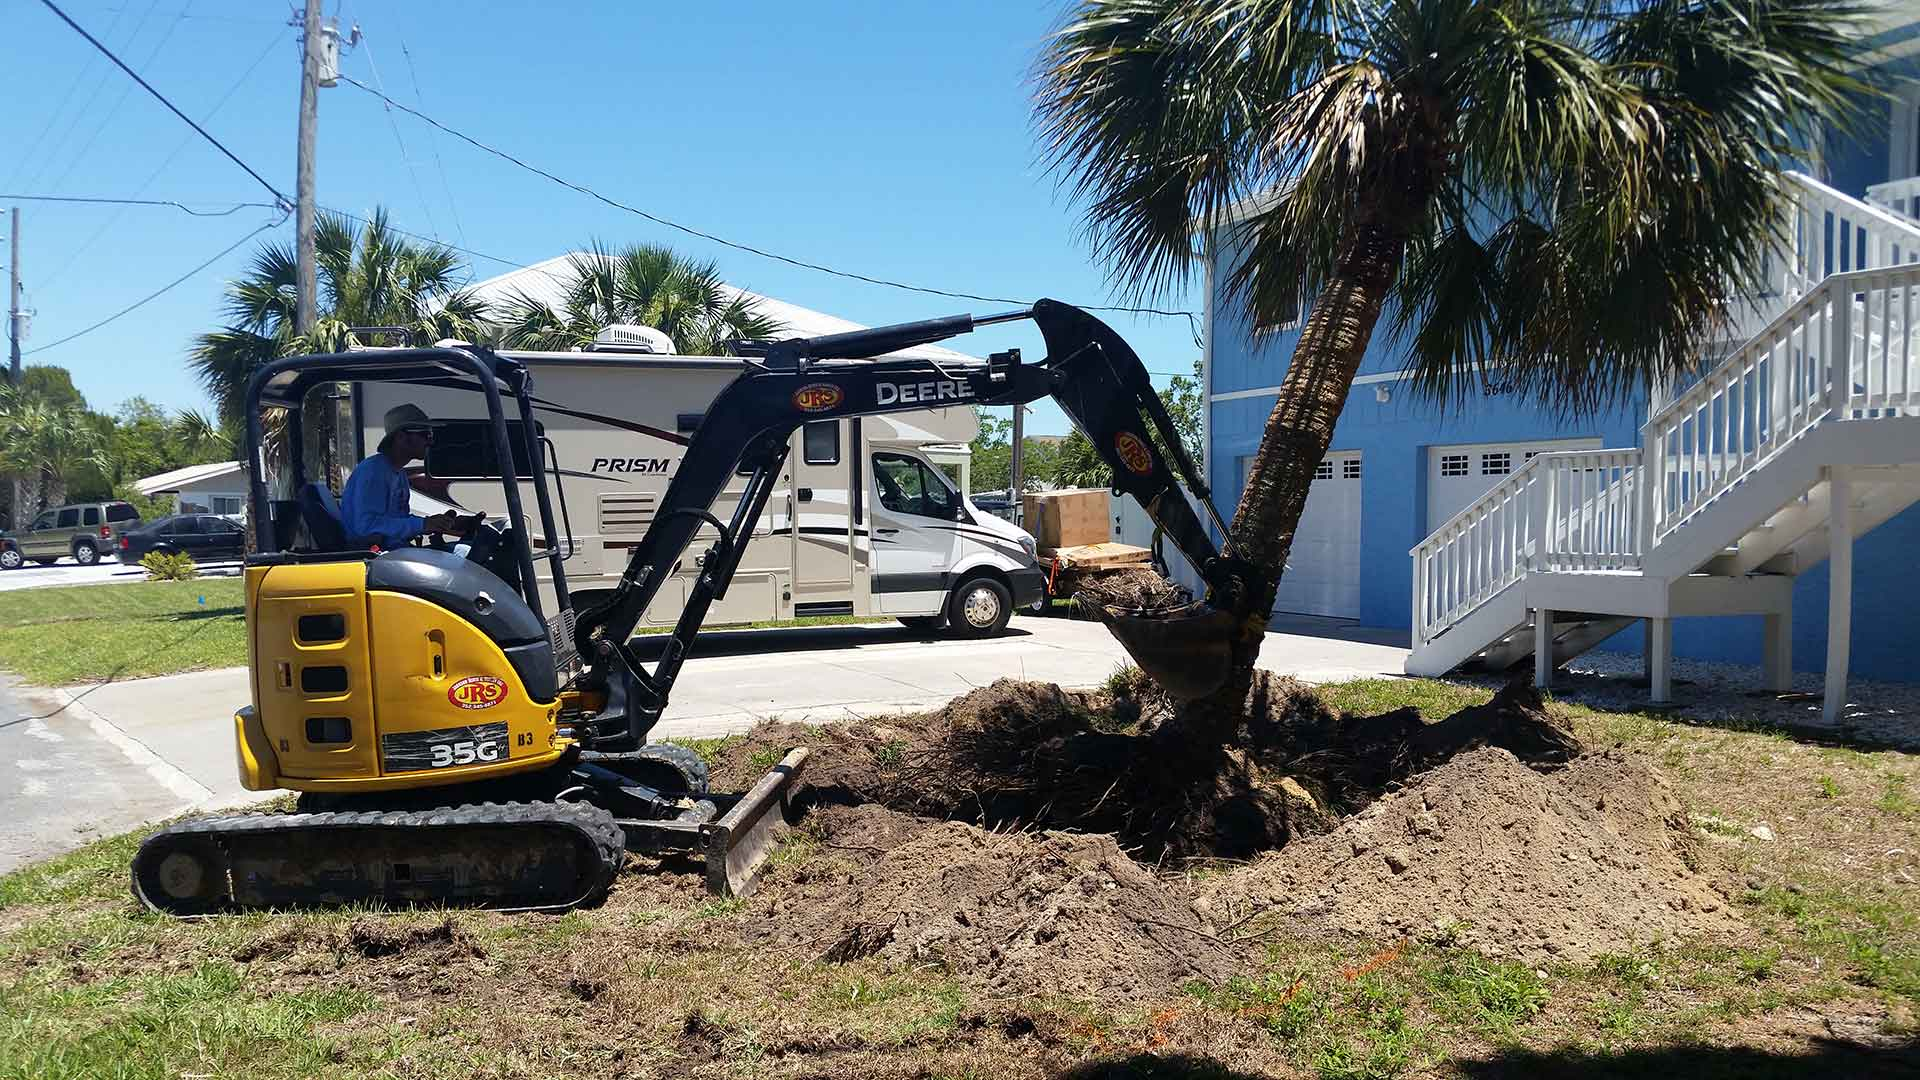 Team member using heavy machinery to knock over a small tree that will be replaced.